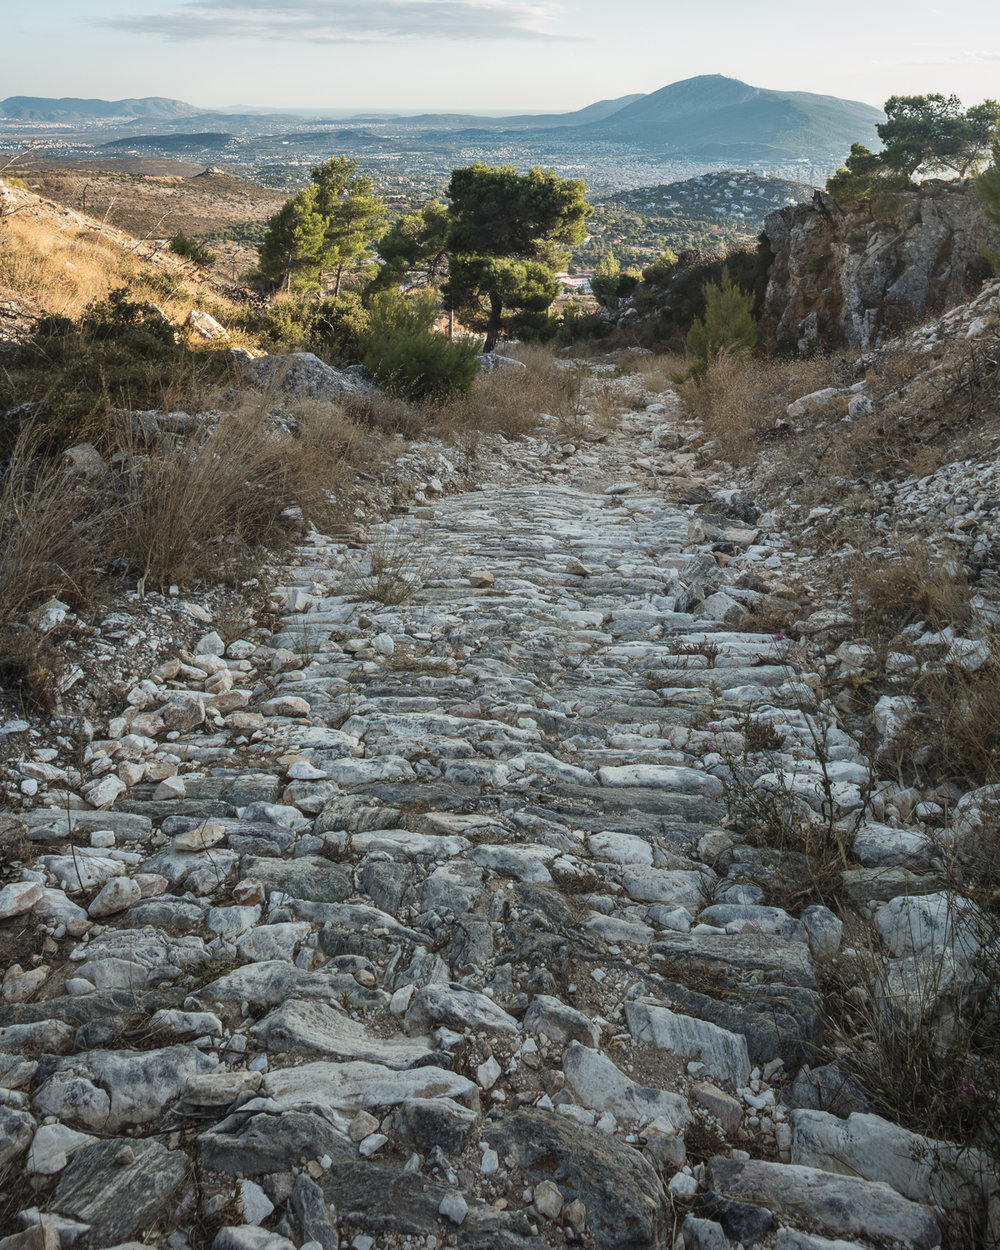 Ancient marble path leading to Athens. This path was used in ancient times to deliver marble quarried on Mt. Penteli to the center of Athens. Among other things, marble quarried here was used to build the monuments of the Acropolis of Athens, including the Parthenon in the 5th century BCE. View facing south with northern suburbs of Athens and Mt. Hymettus visible  in the background.